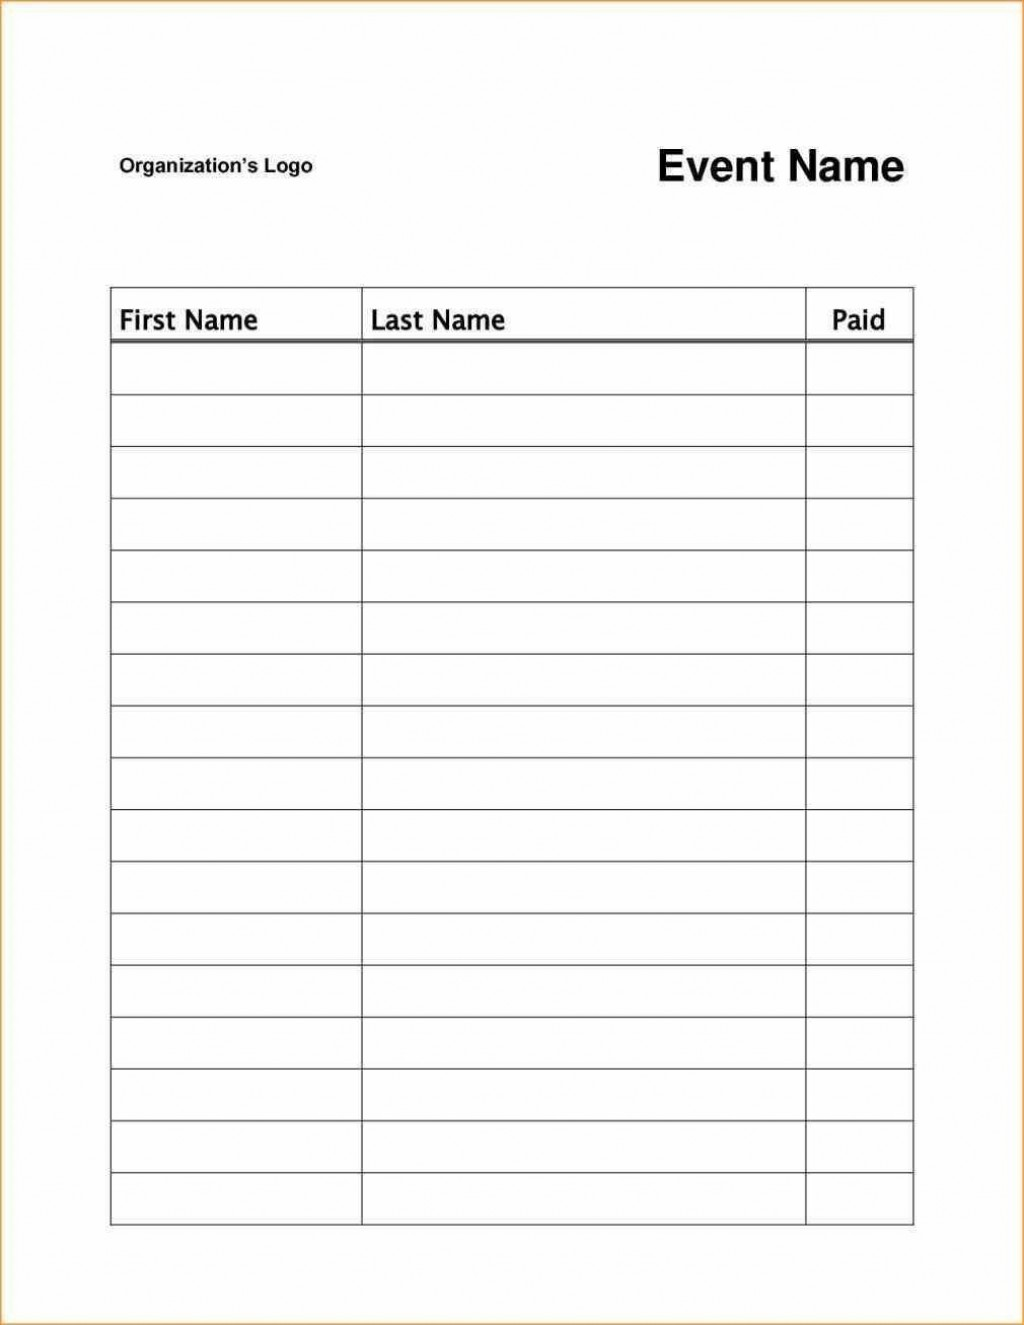 003 Breathtaking Pdf Sign Up Sheet Template High Resolution Large